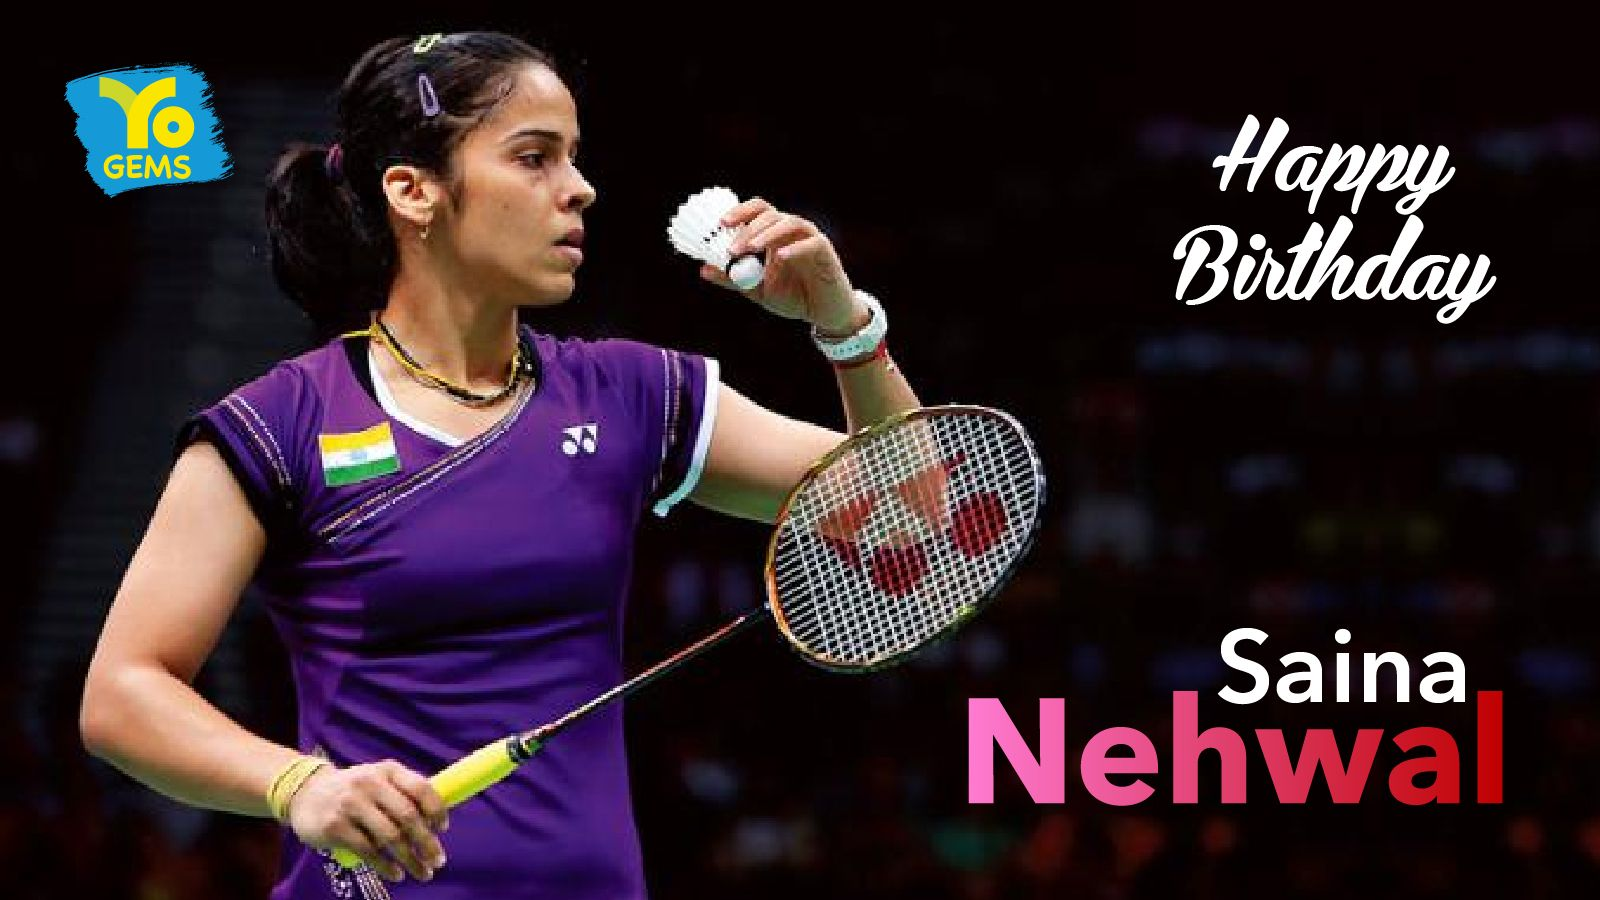 Happy Birthday Acebadmintonplayer An Indian Badminton Player Who Attained A Career Best Ranking Of 2nd December 2010 By In 2020 Sports Personality Happy Birthday